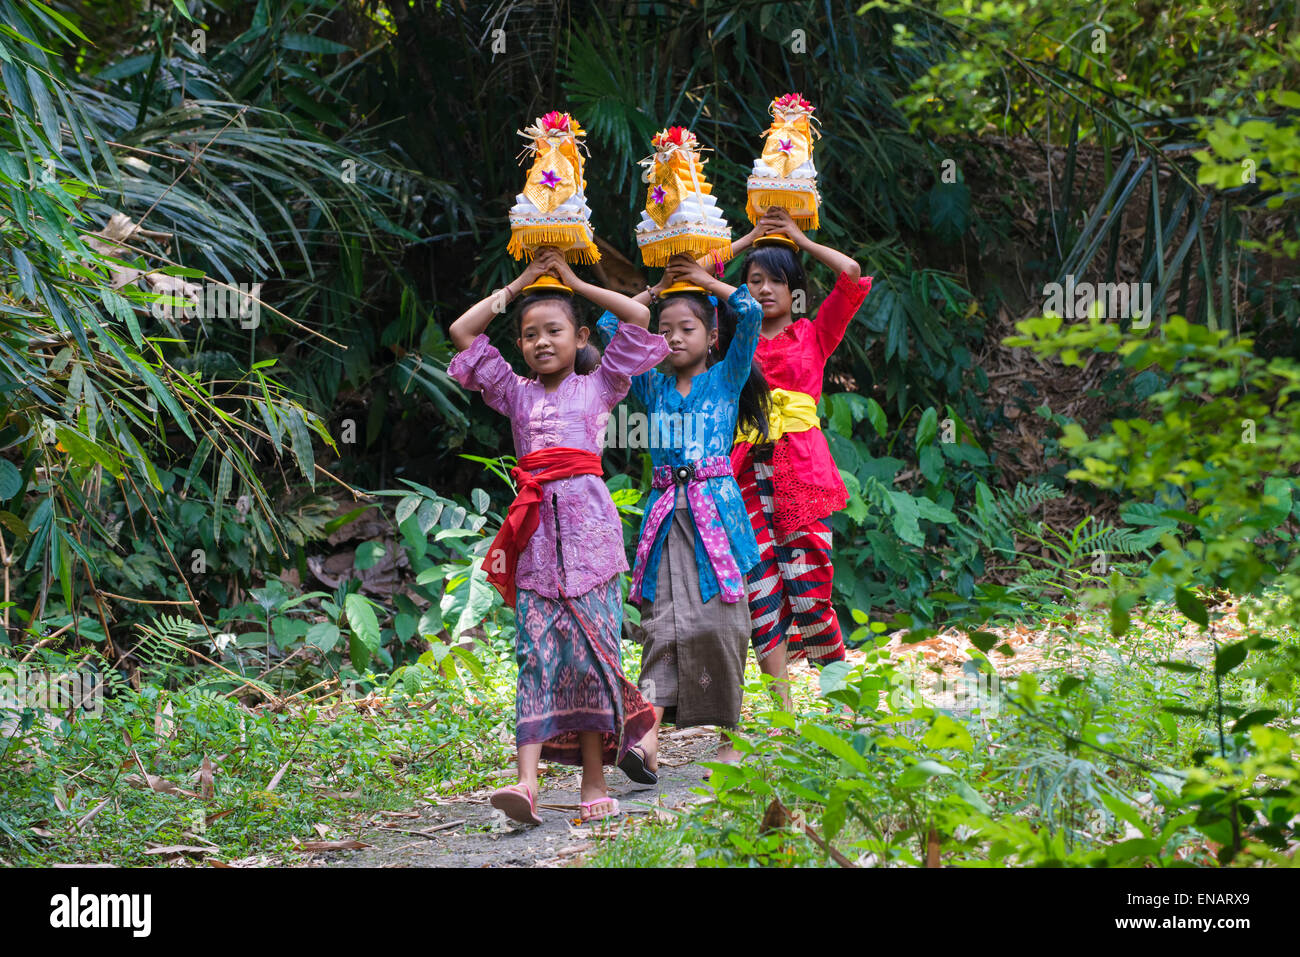 Three girls walking to the temple with offerings for a ceremony on the head, Bali, Indonesia - Stock Image